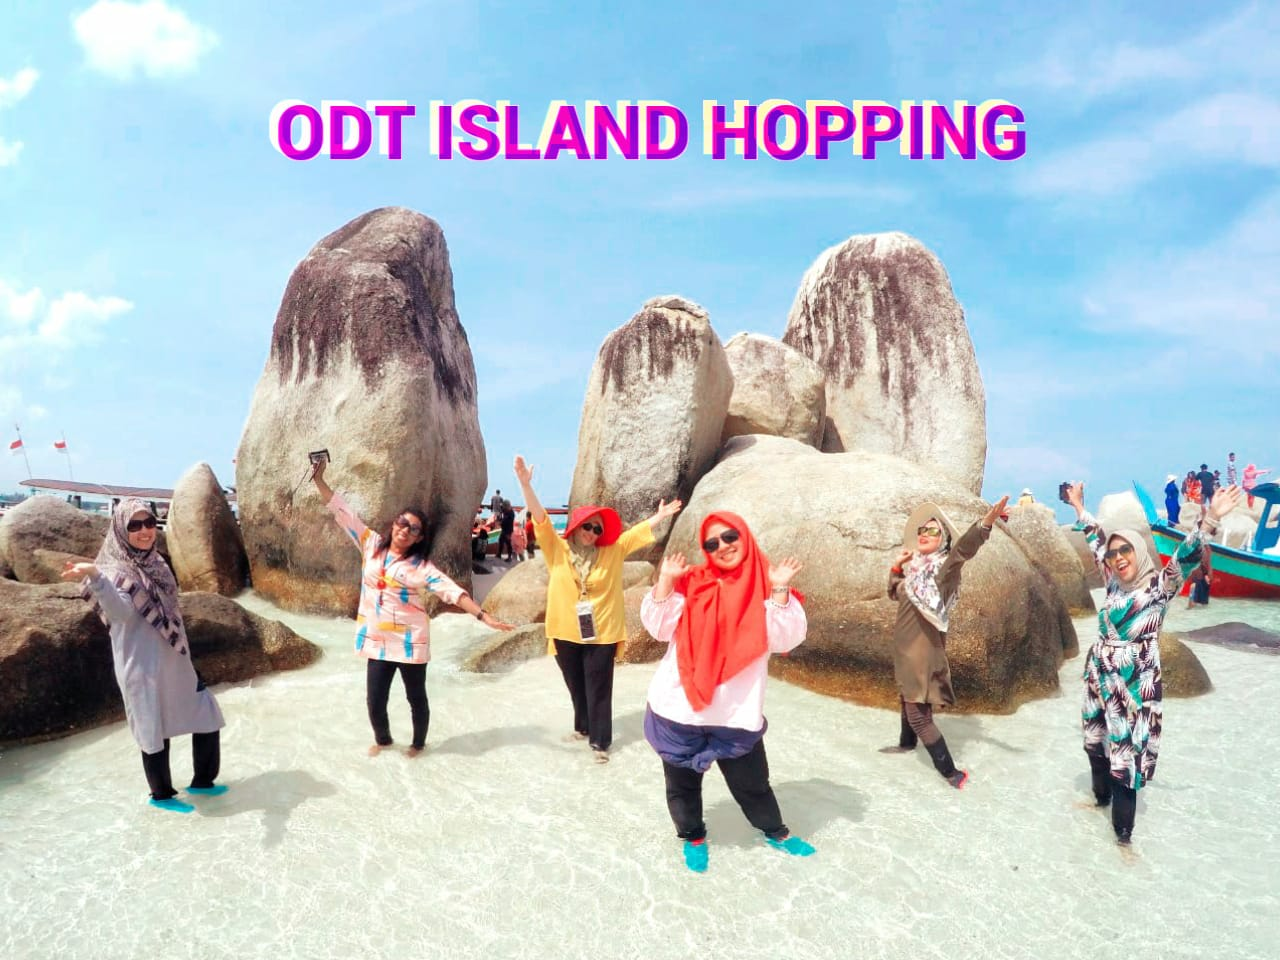 ODT ISLAND HOPPING